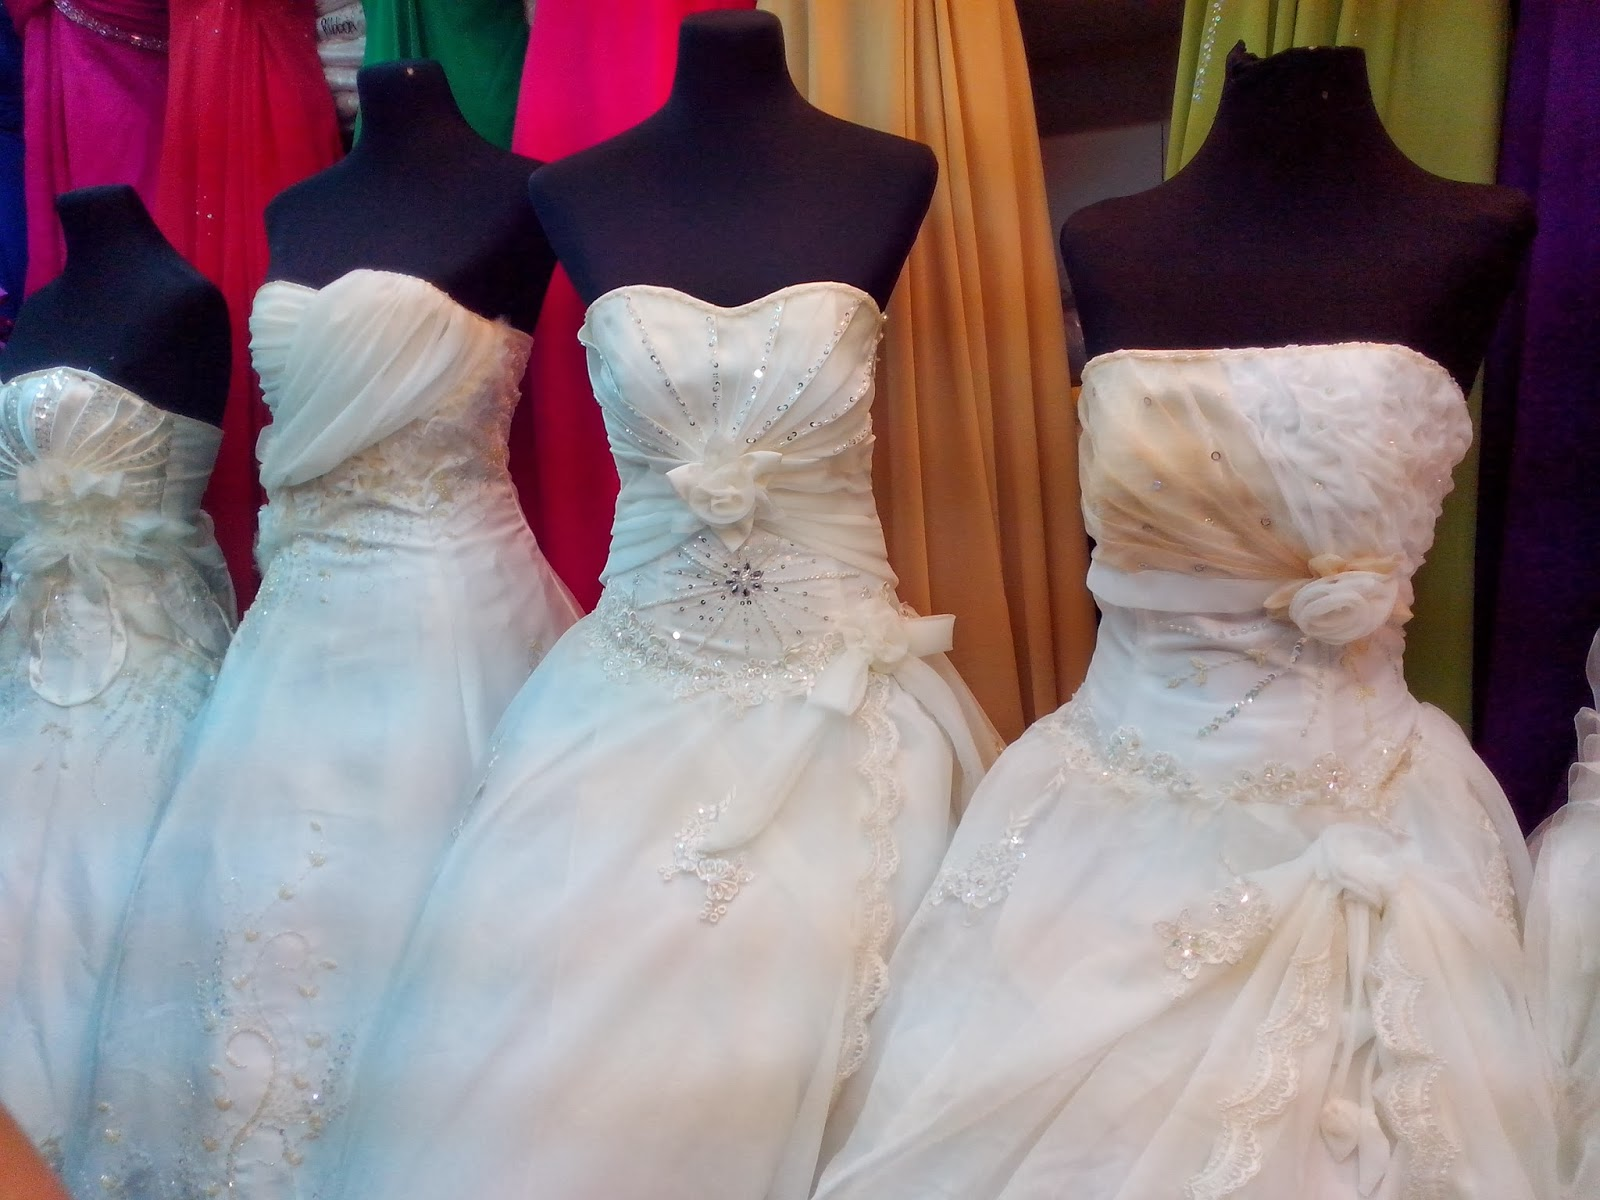 Where To Buy Affordable Wedding Dress In The Philippines